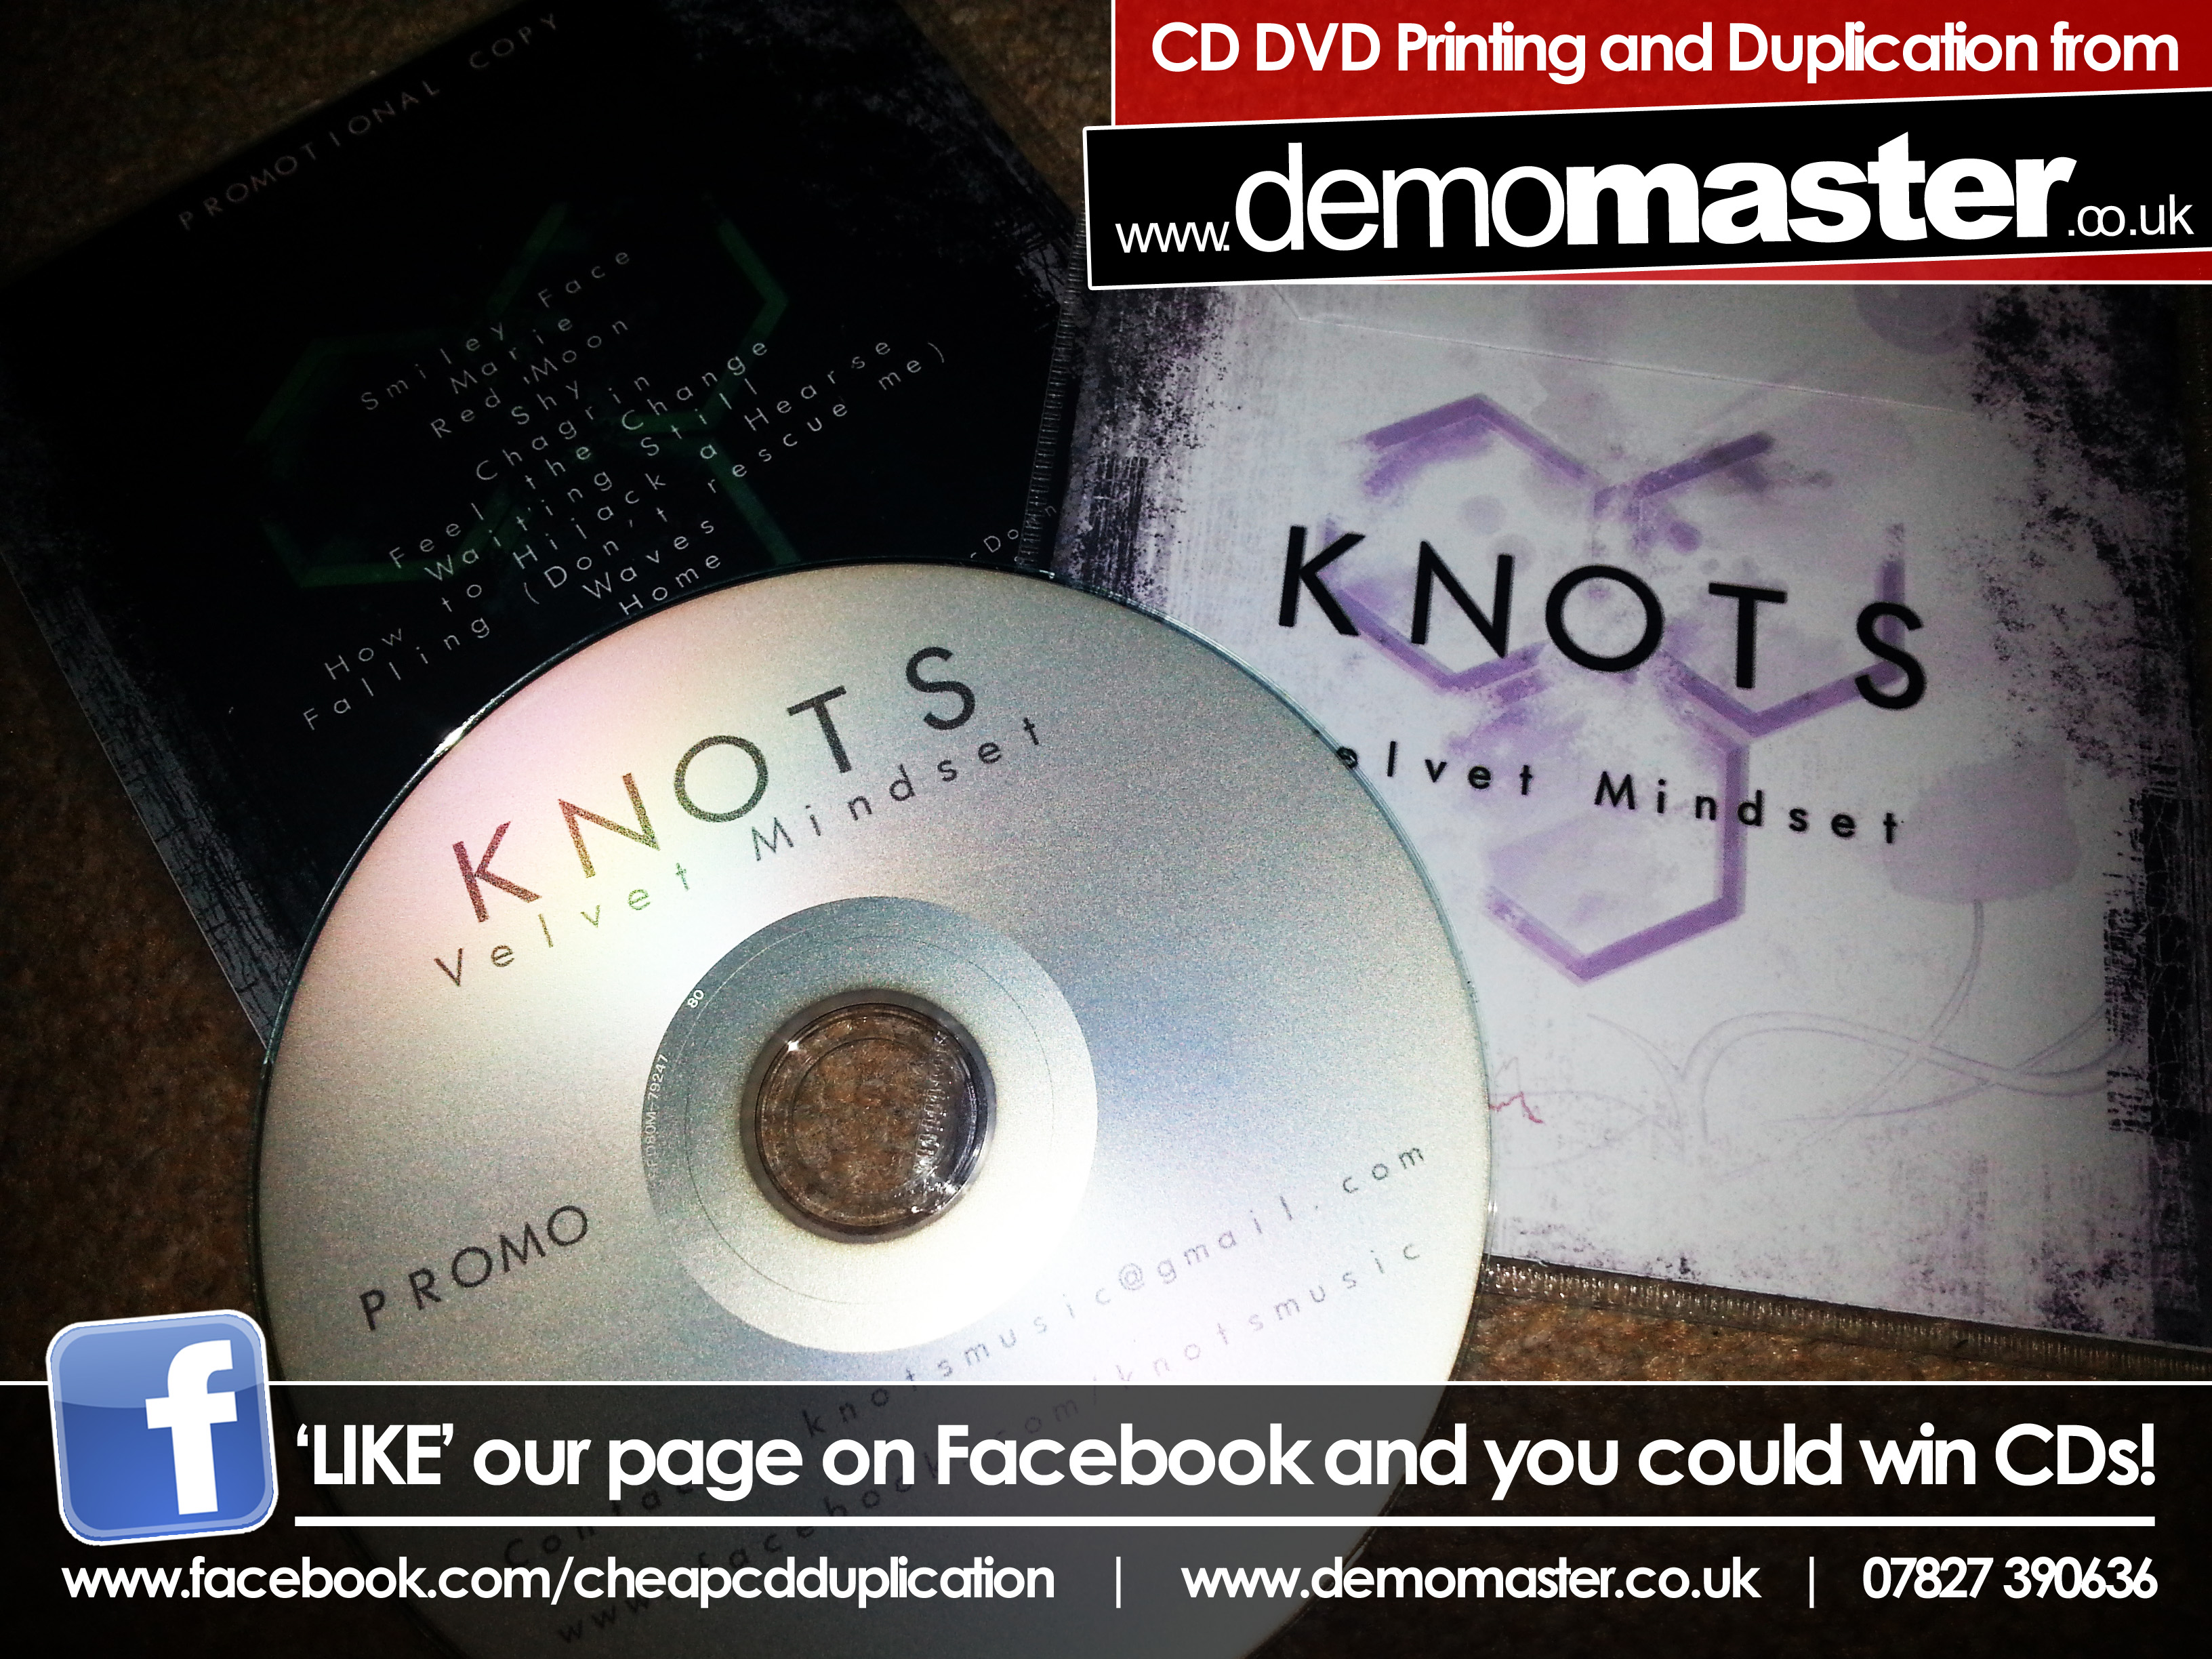 Knots - Velvet Mindset Promo CD